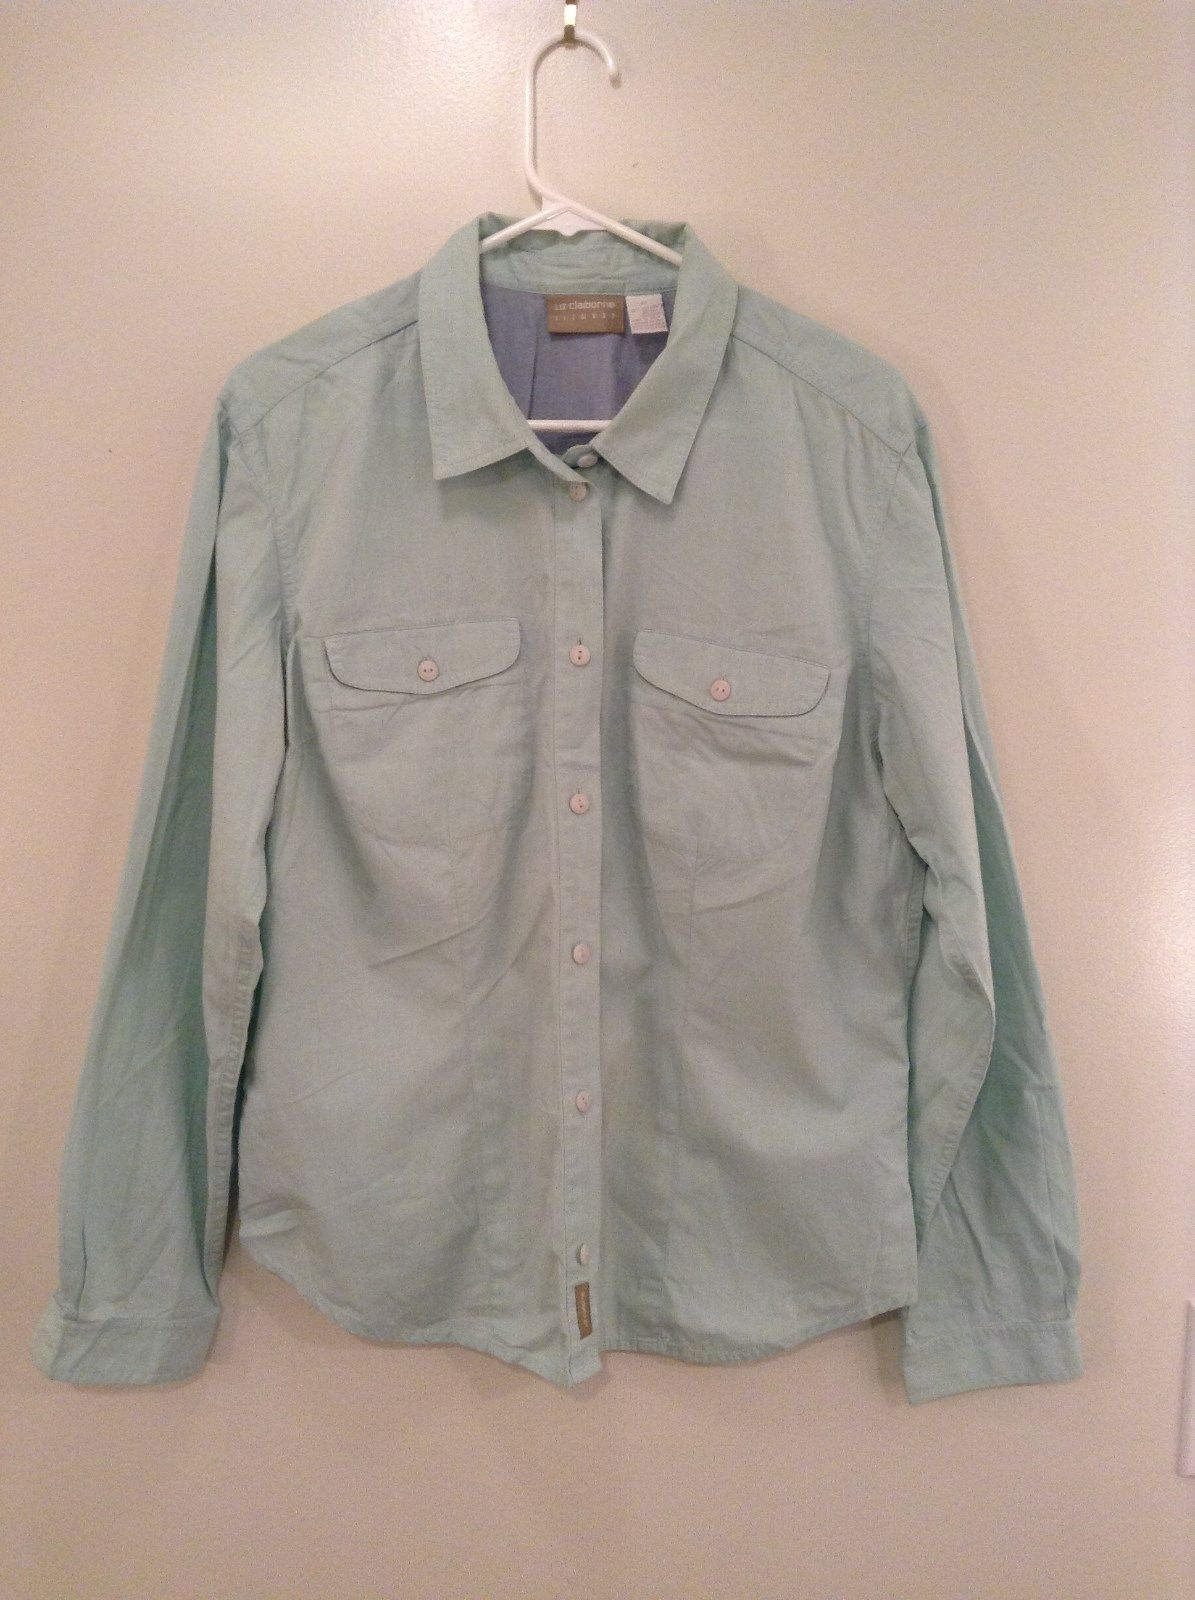 Light Green Liz Claiborne Size 12 Button Up Shirt Size 12 Two Chest Pockets